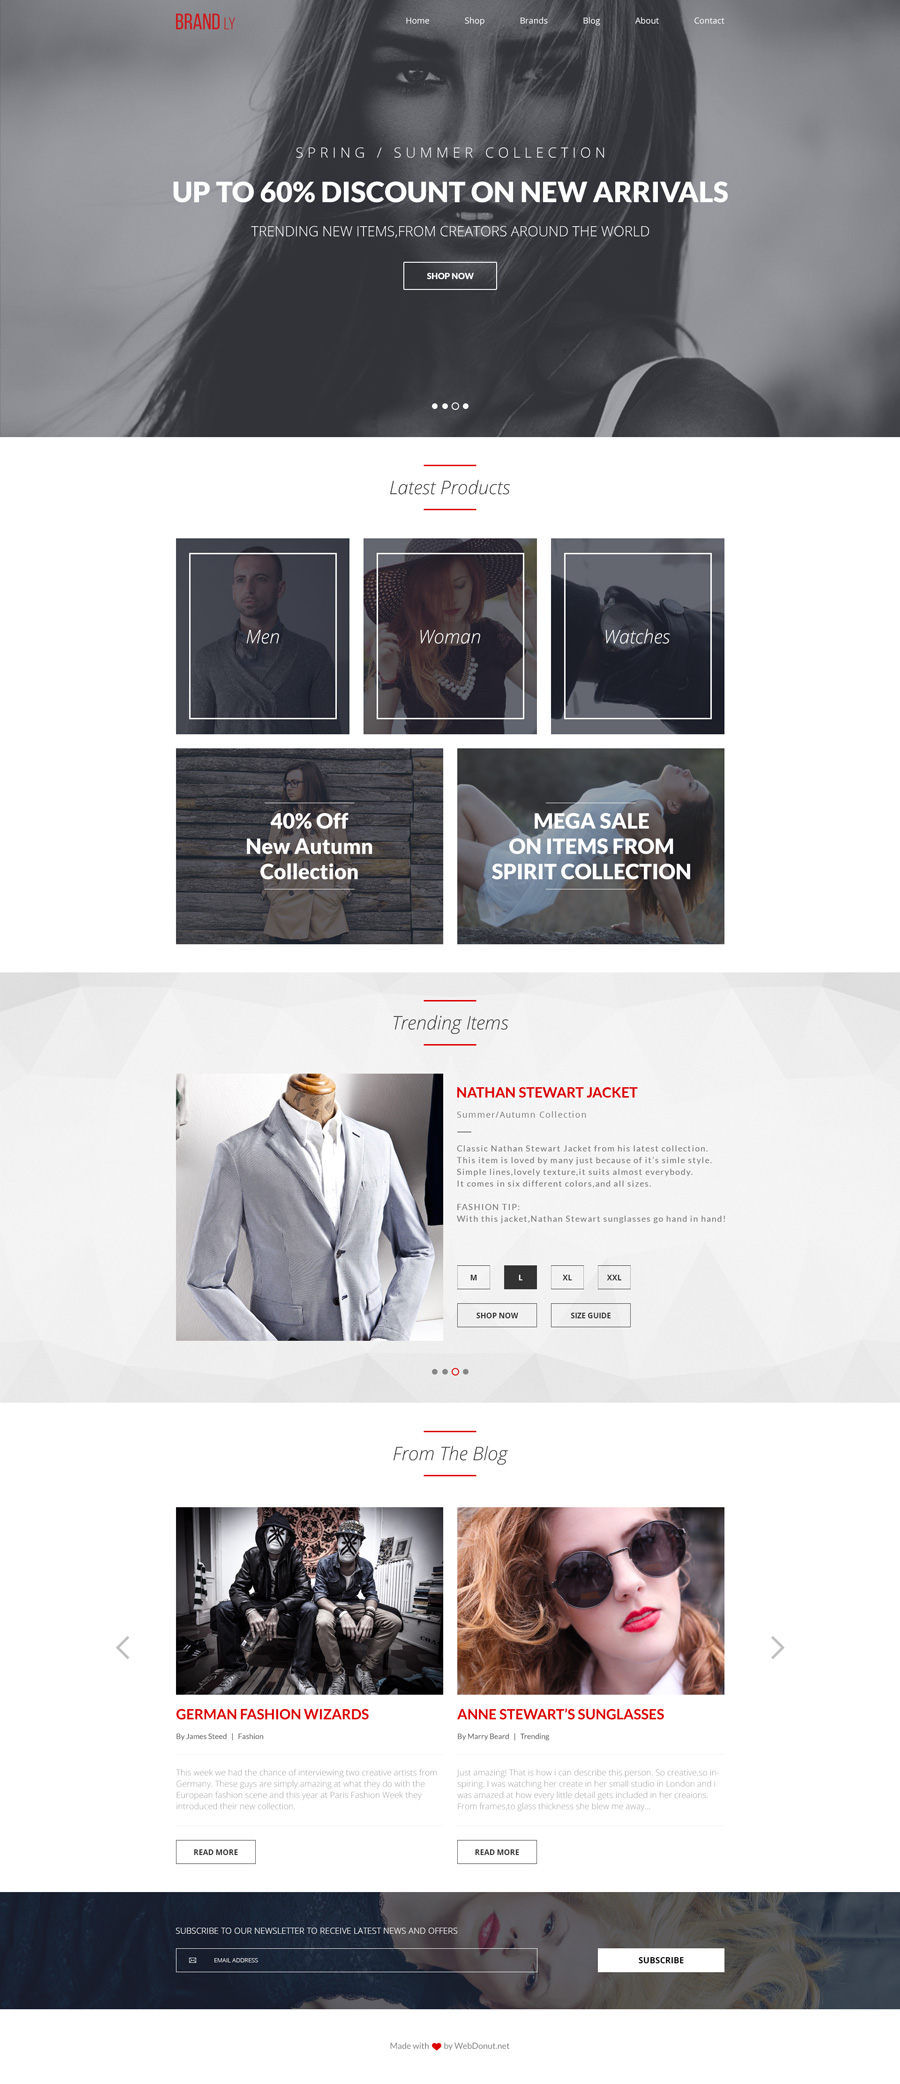 Brandly free PSD website template - BlazRobar.com